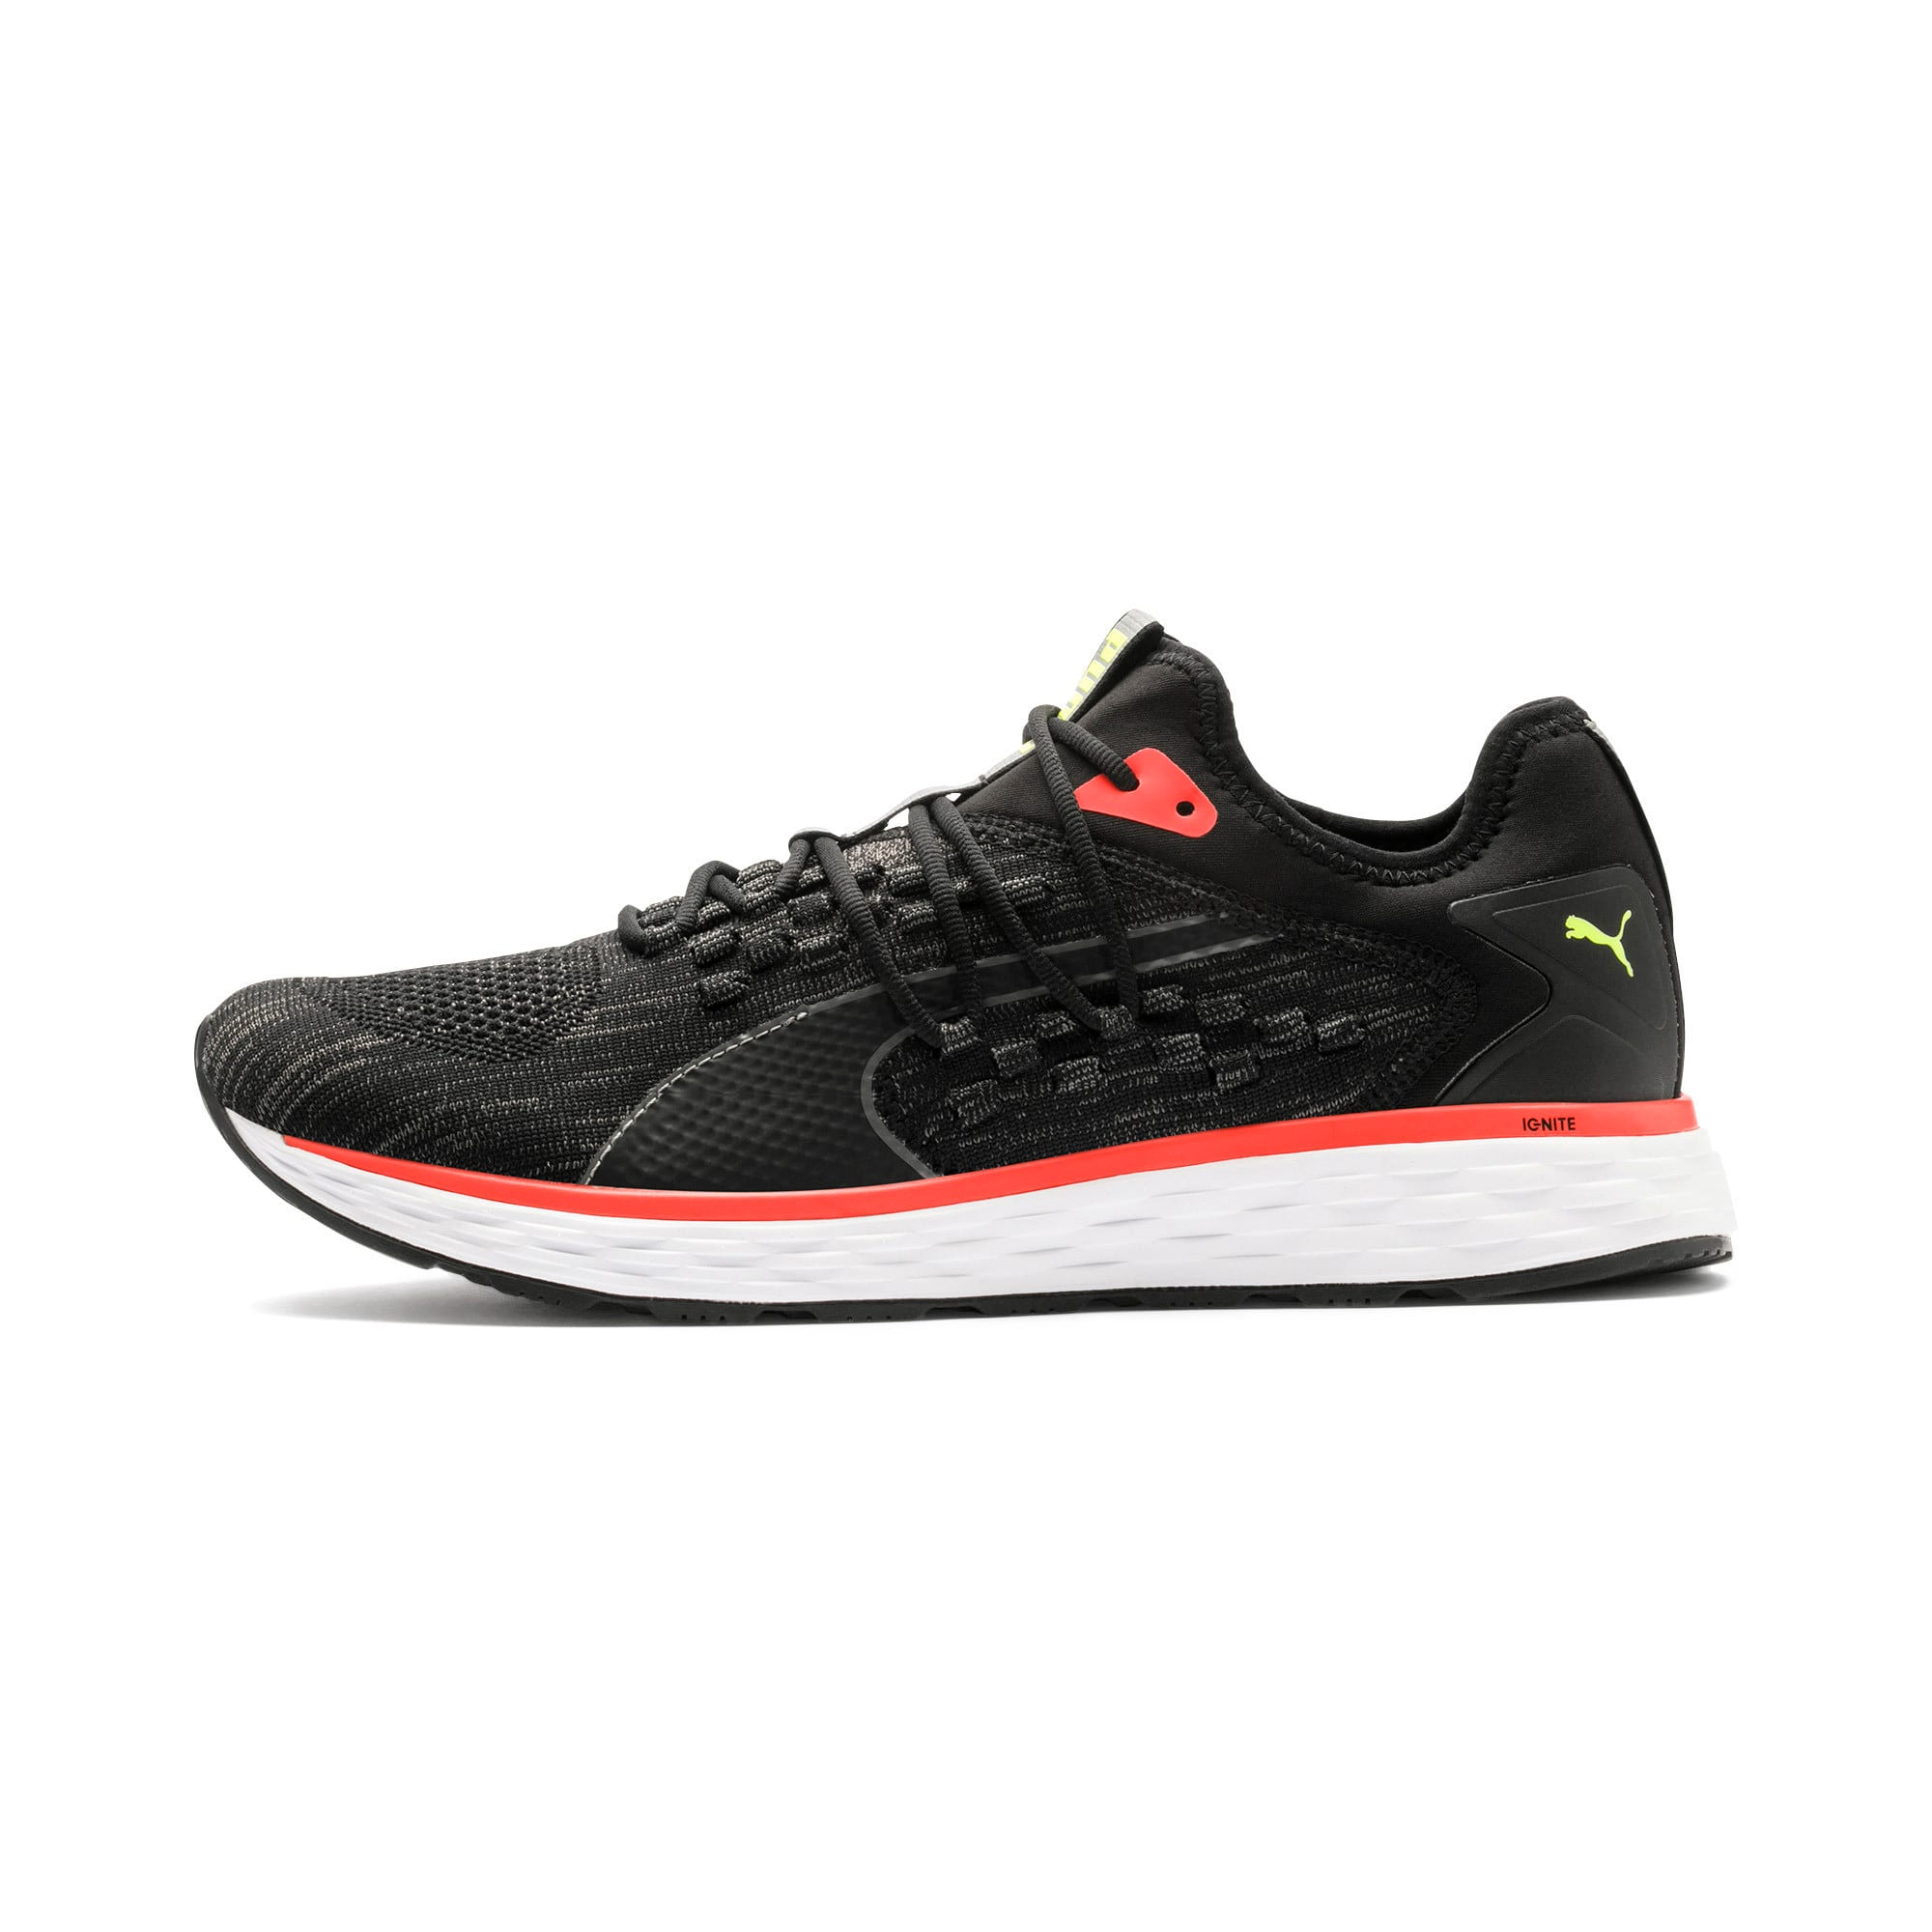 Thumbnail 1 of SPEED FUSEFIT Men's Running Shoes, Puma Black-Nrgy Red, medium